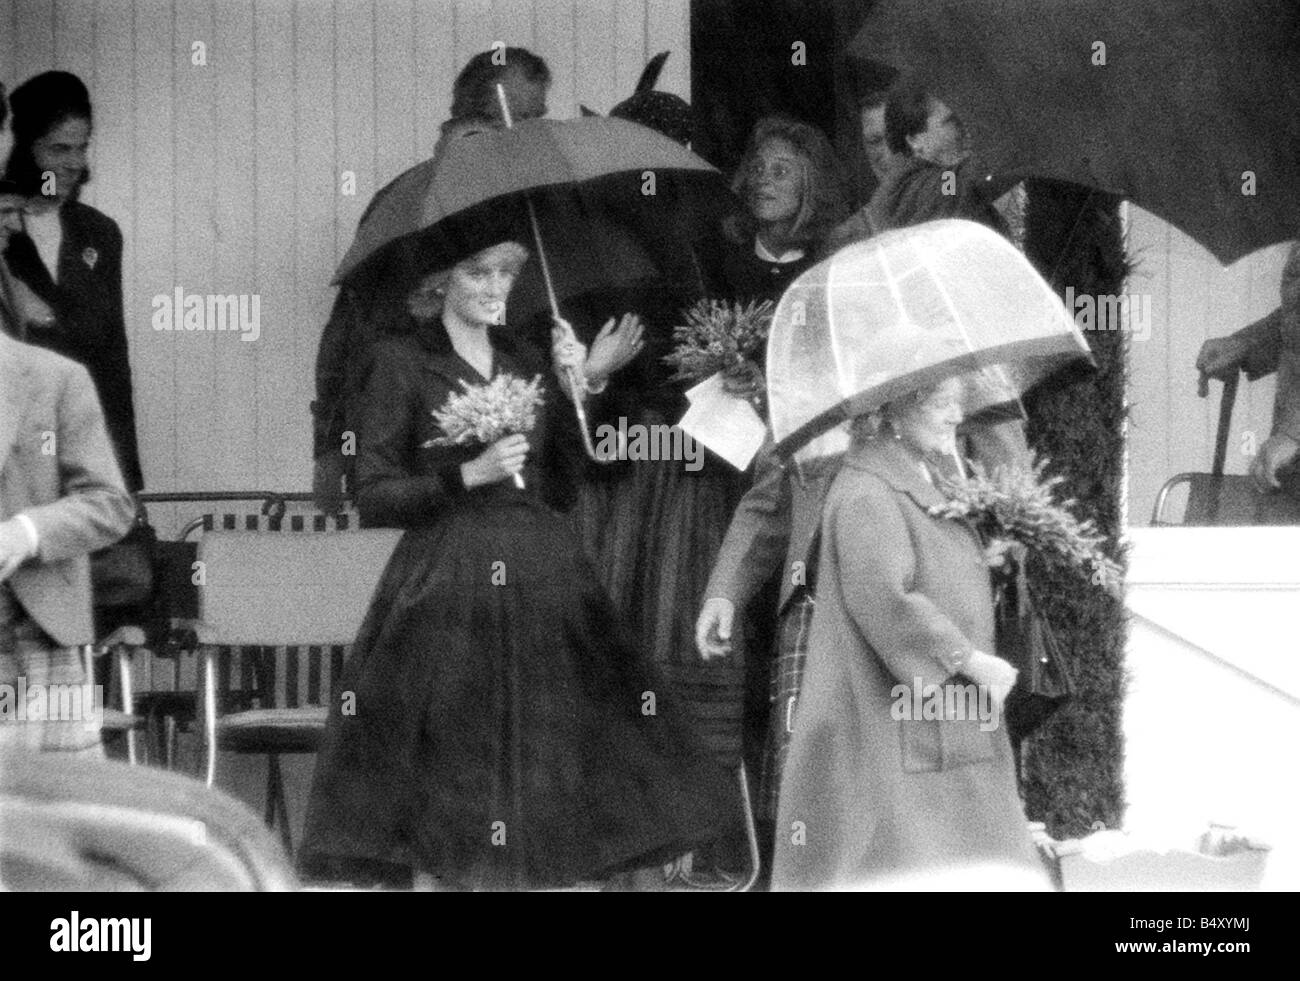 Princess Diana and The Queen Mum September 1987 Royalty at the Braemar for the Highland games with their brollies Stock Photo